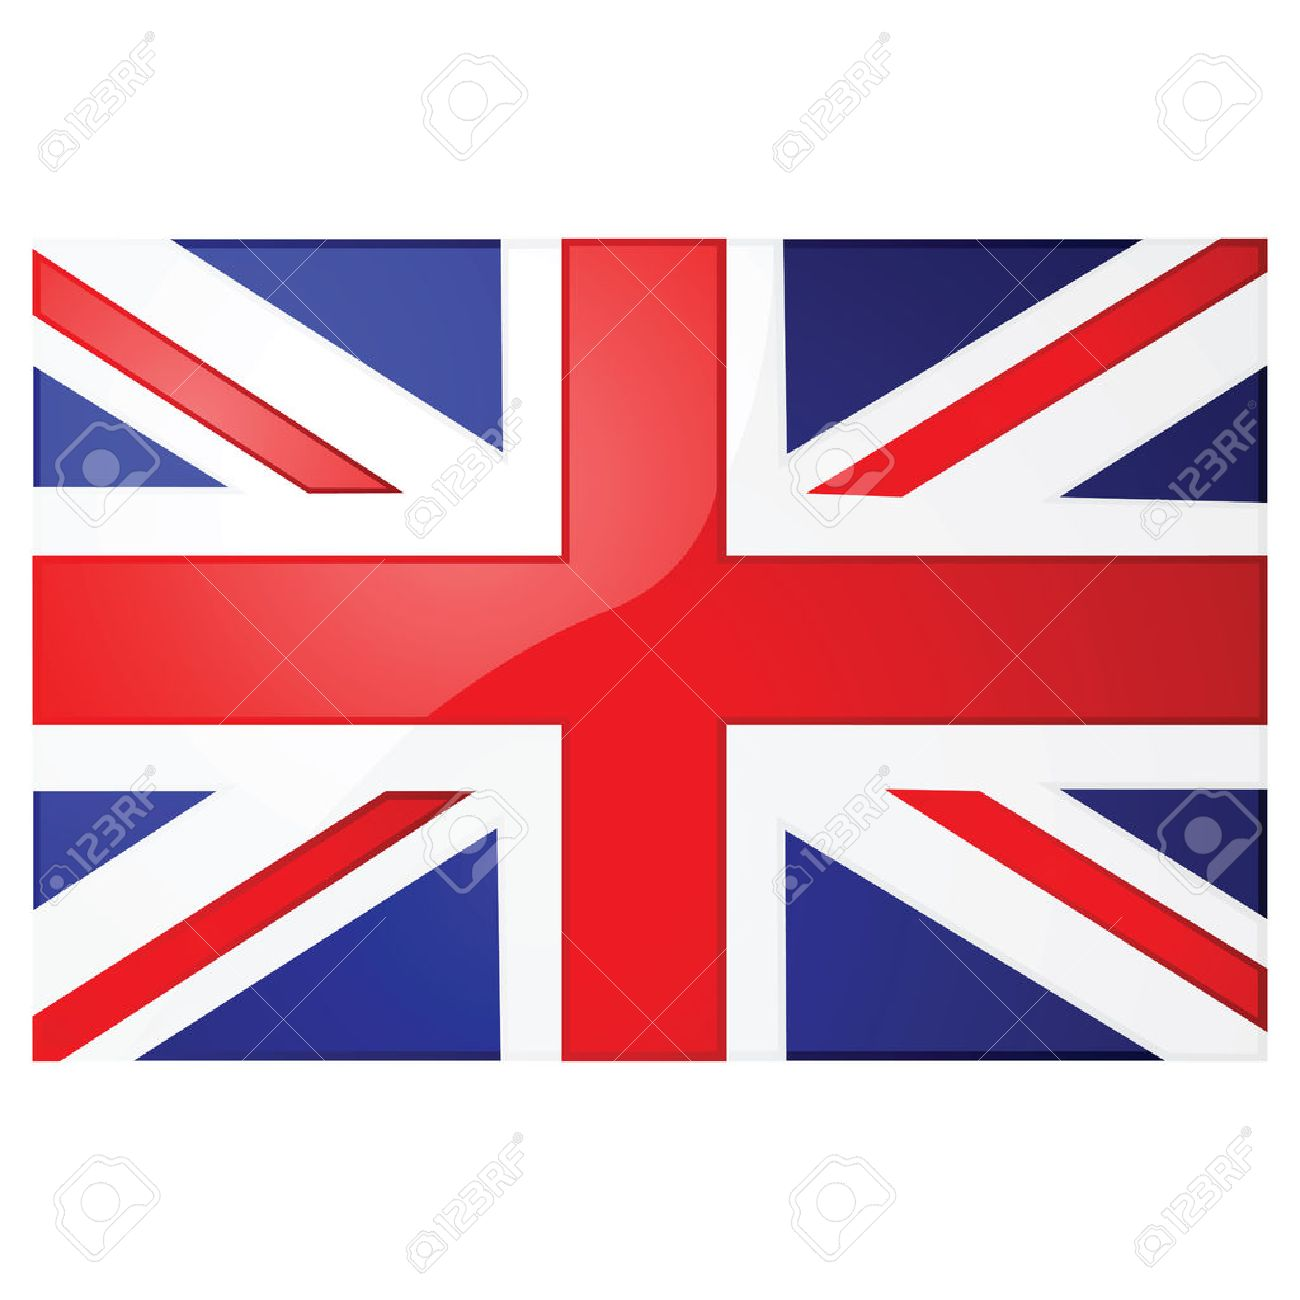 British Flag Template Eliolera